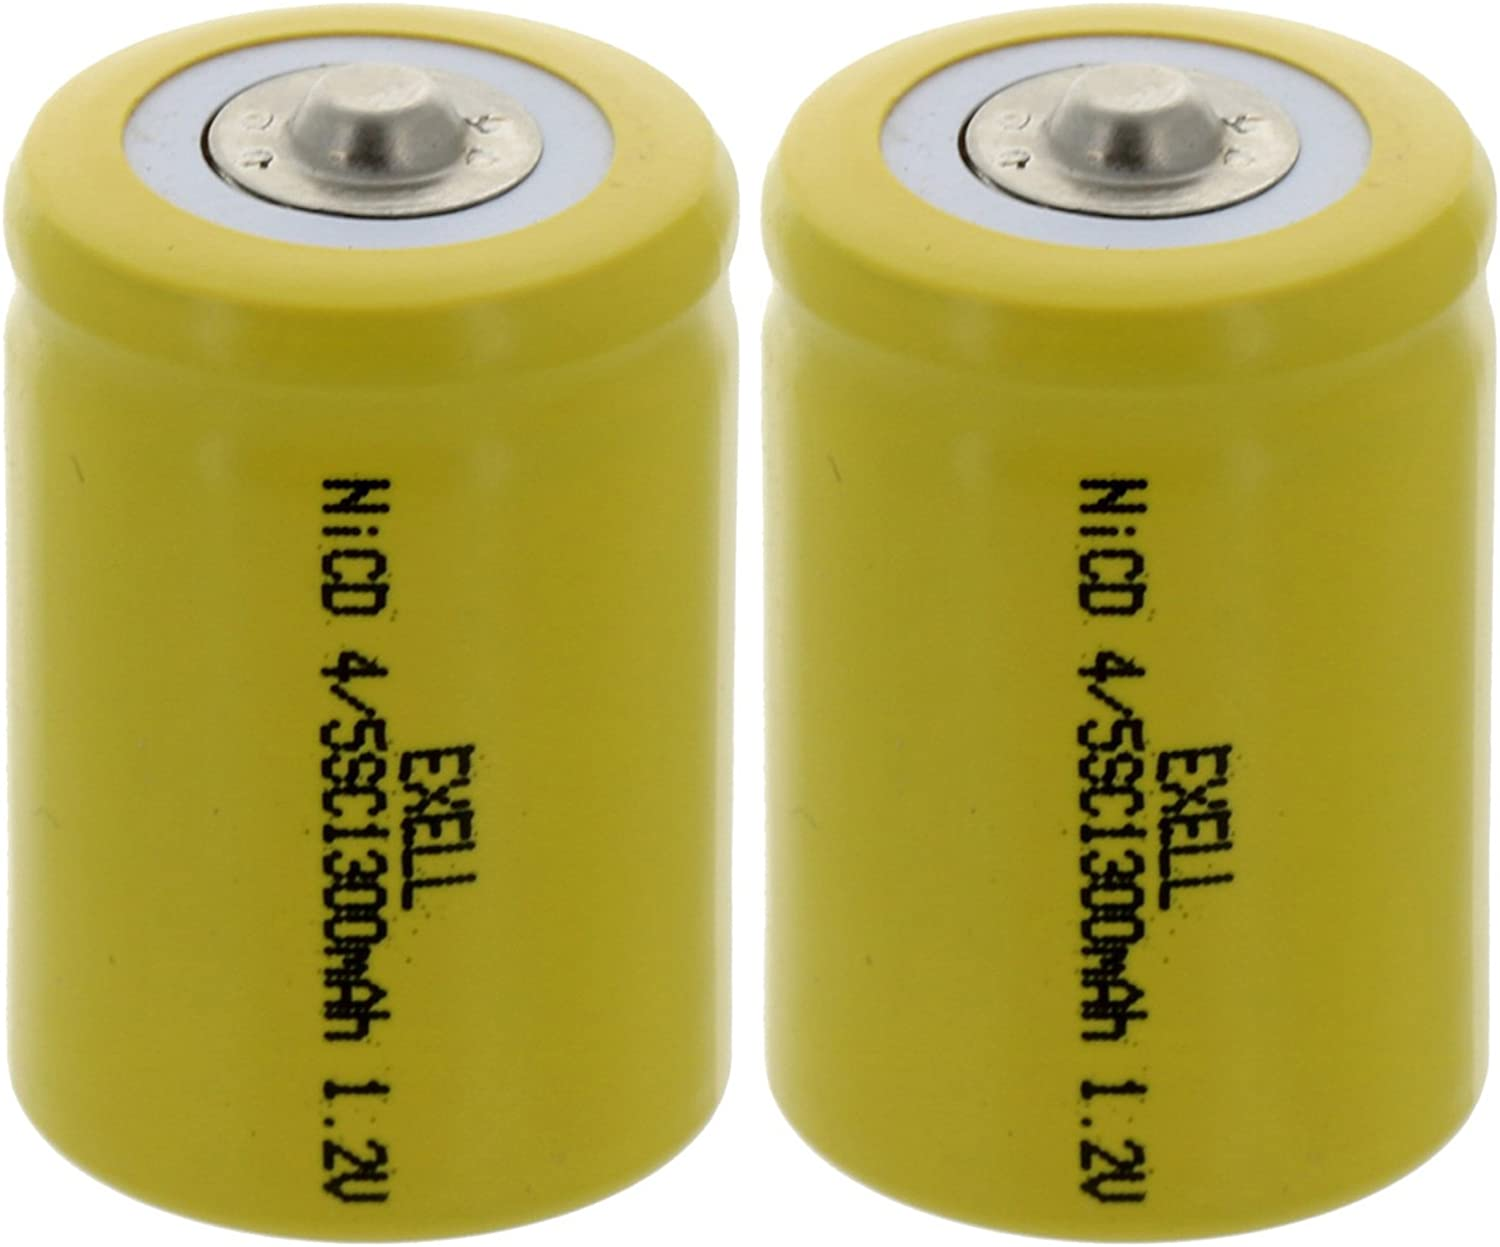 2-PACK 4 5 SubC Selling 1.2V 1200mAh Max 84% OFF Button Rechargeable Top NiCD Batt